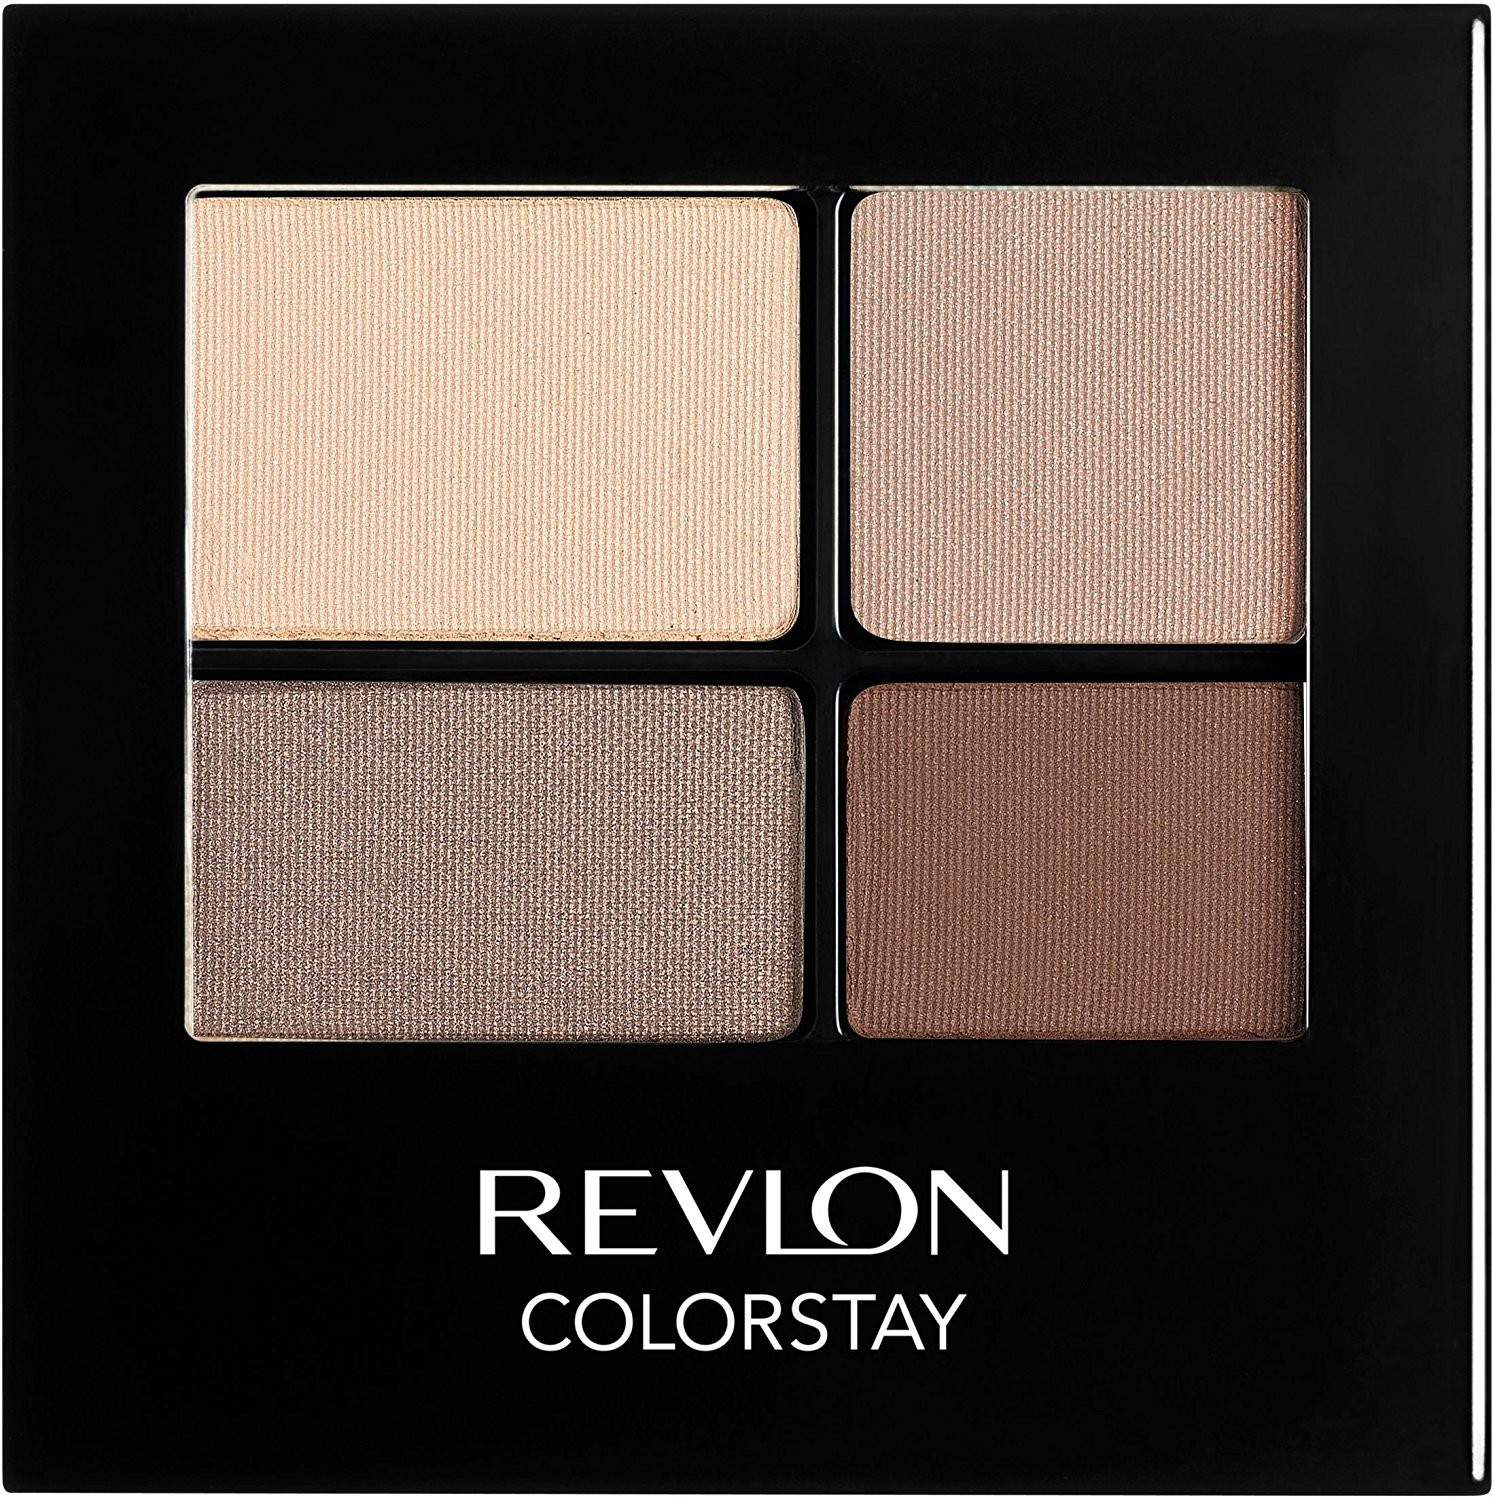 Revlon Colorstay Eye Palette